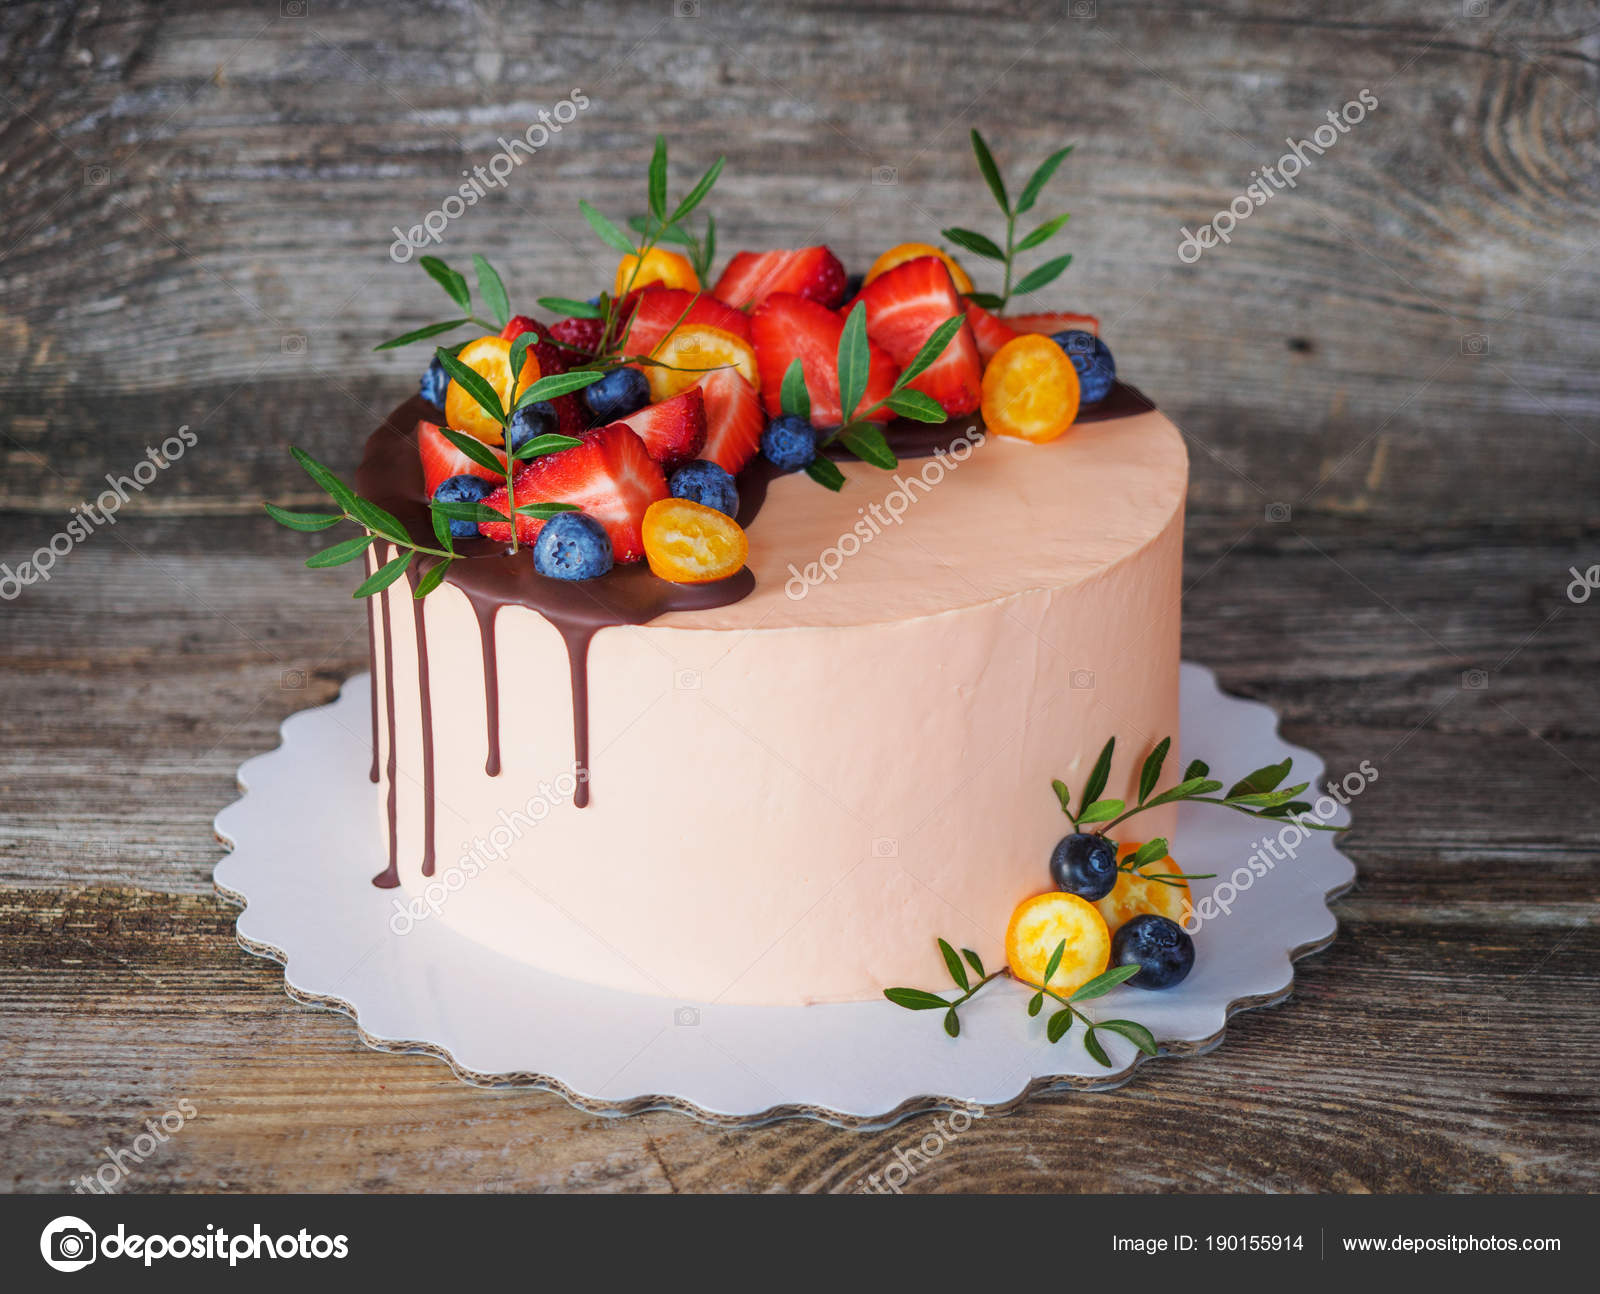 Beautiful Homemade Cake With Multicolored Curd Cream Decorated Strawberries And Blueberries Photo By